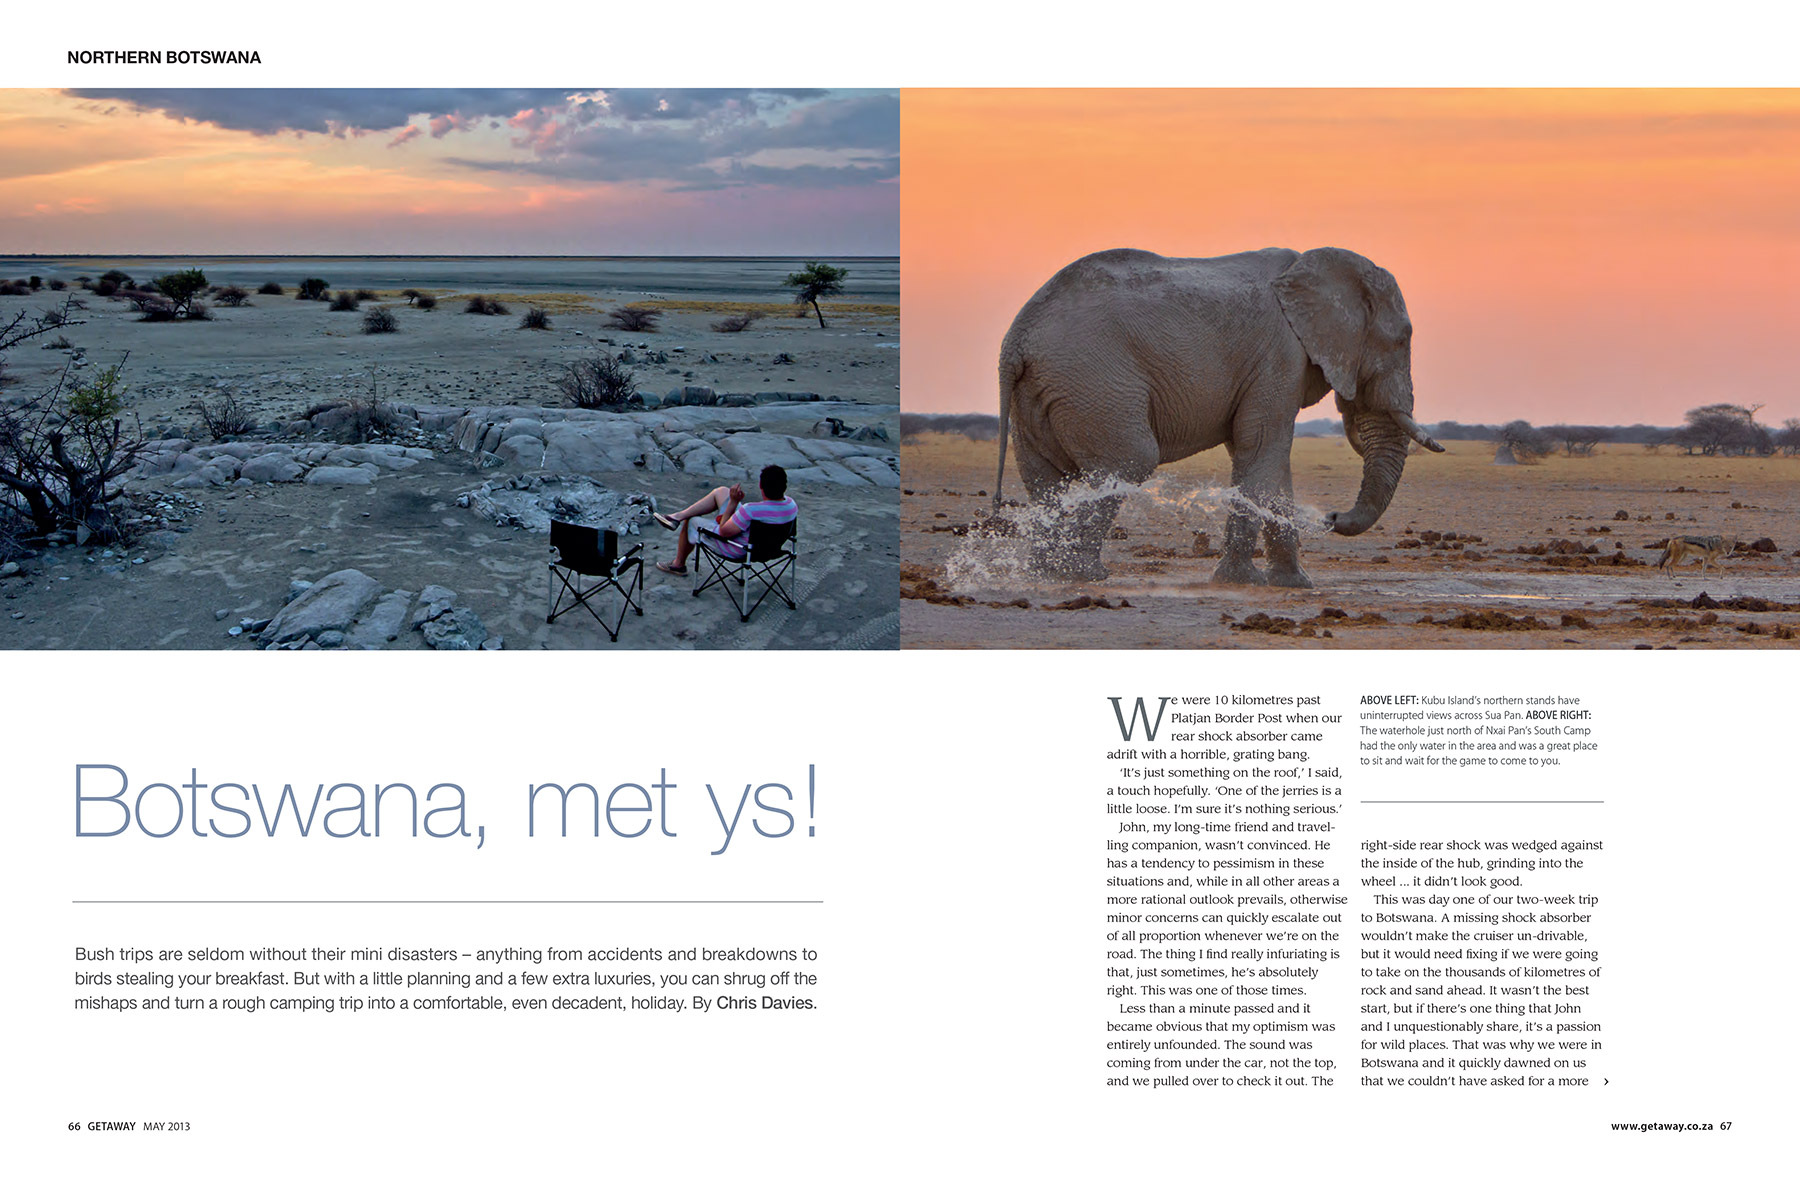 Getaway Magazine - The best of Botswana in a two-week camping trip.